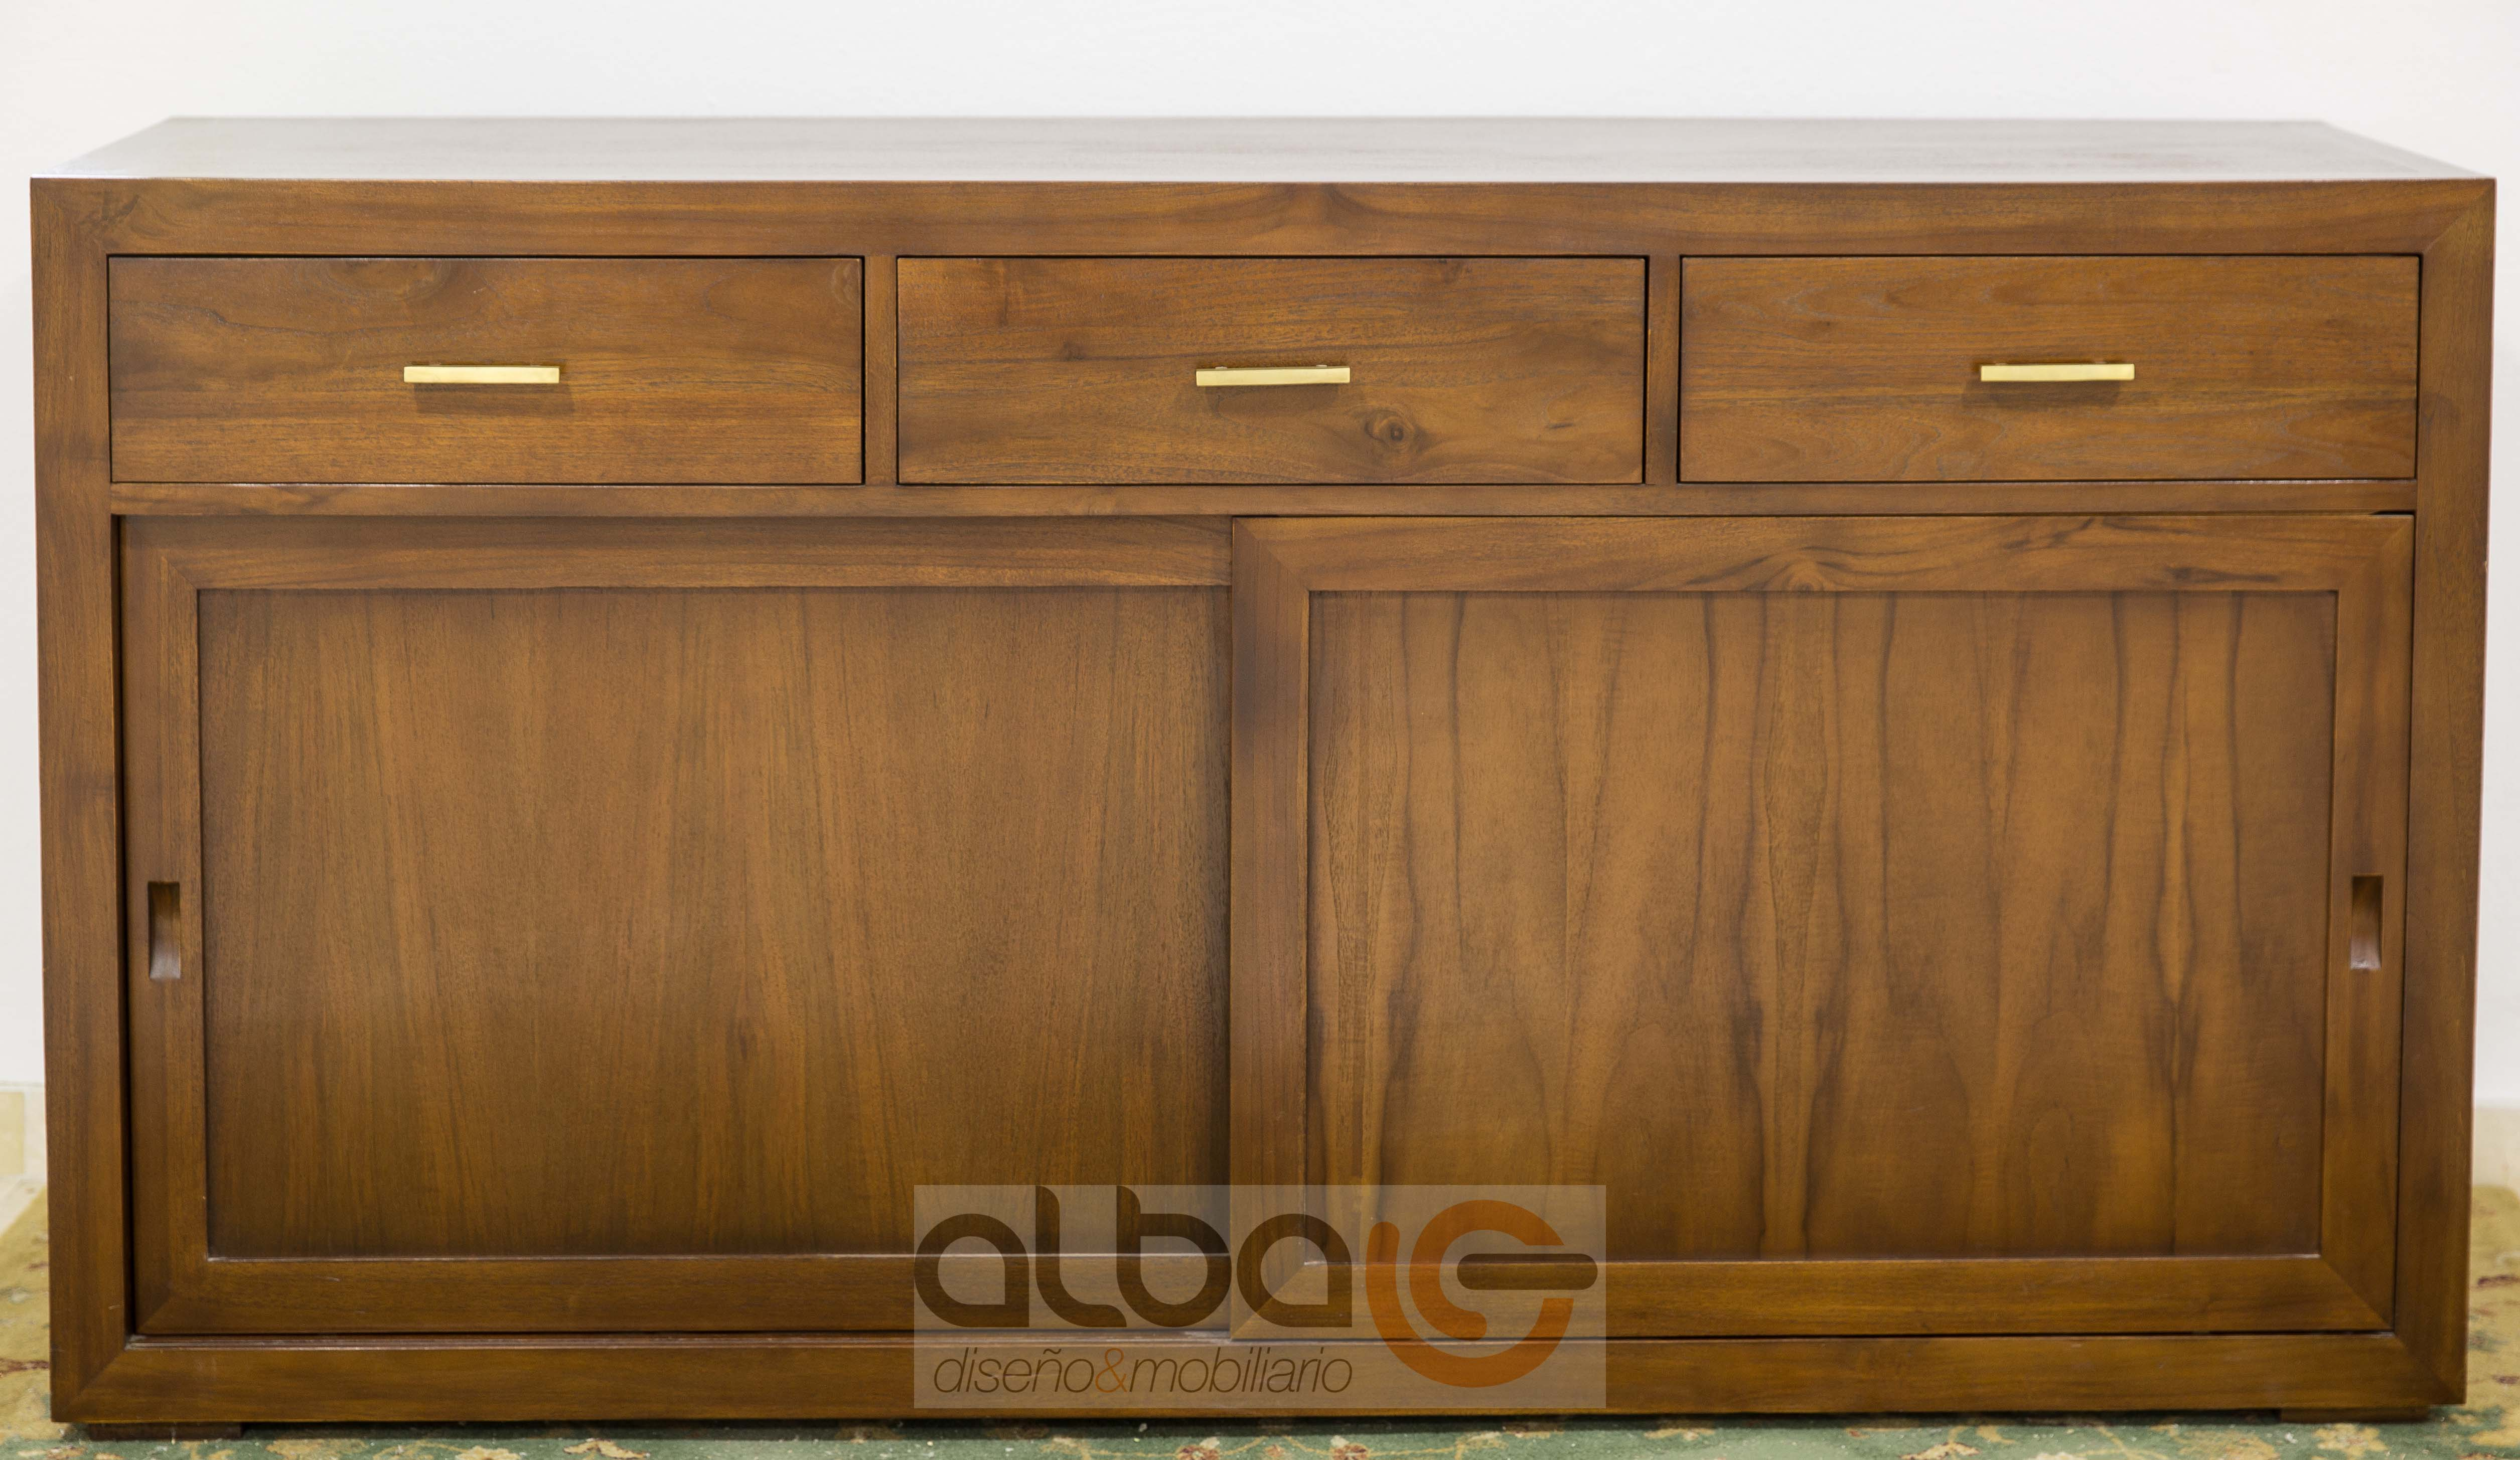 Mueble buffet goab alba dise o mobiliario for Mueble buffet